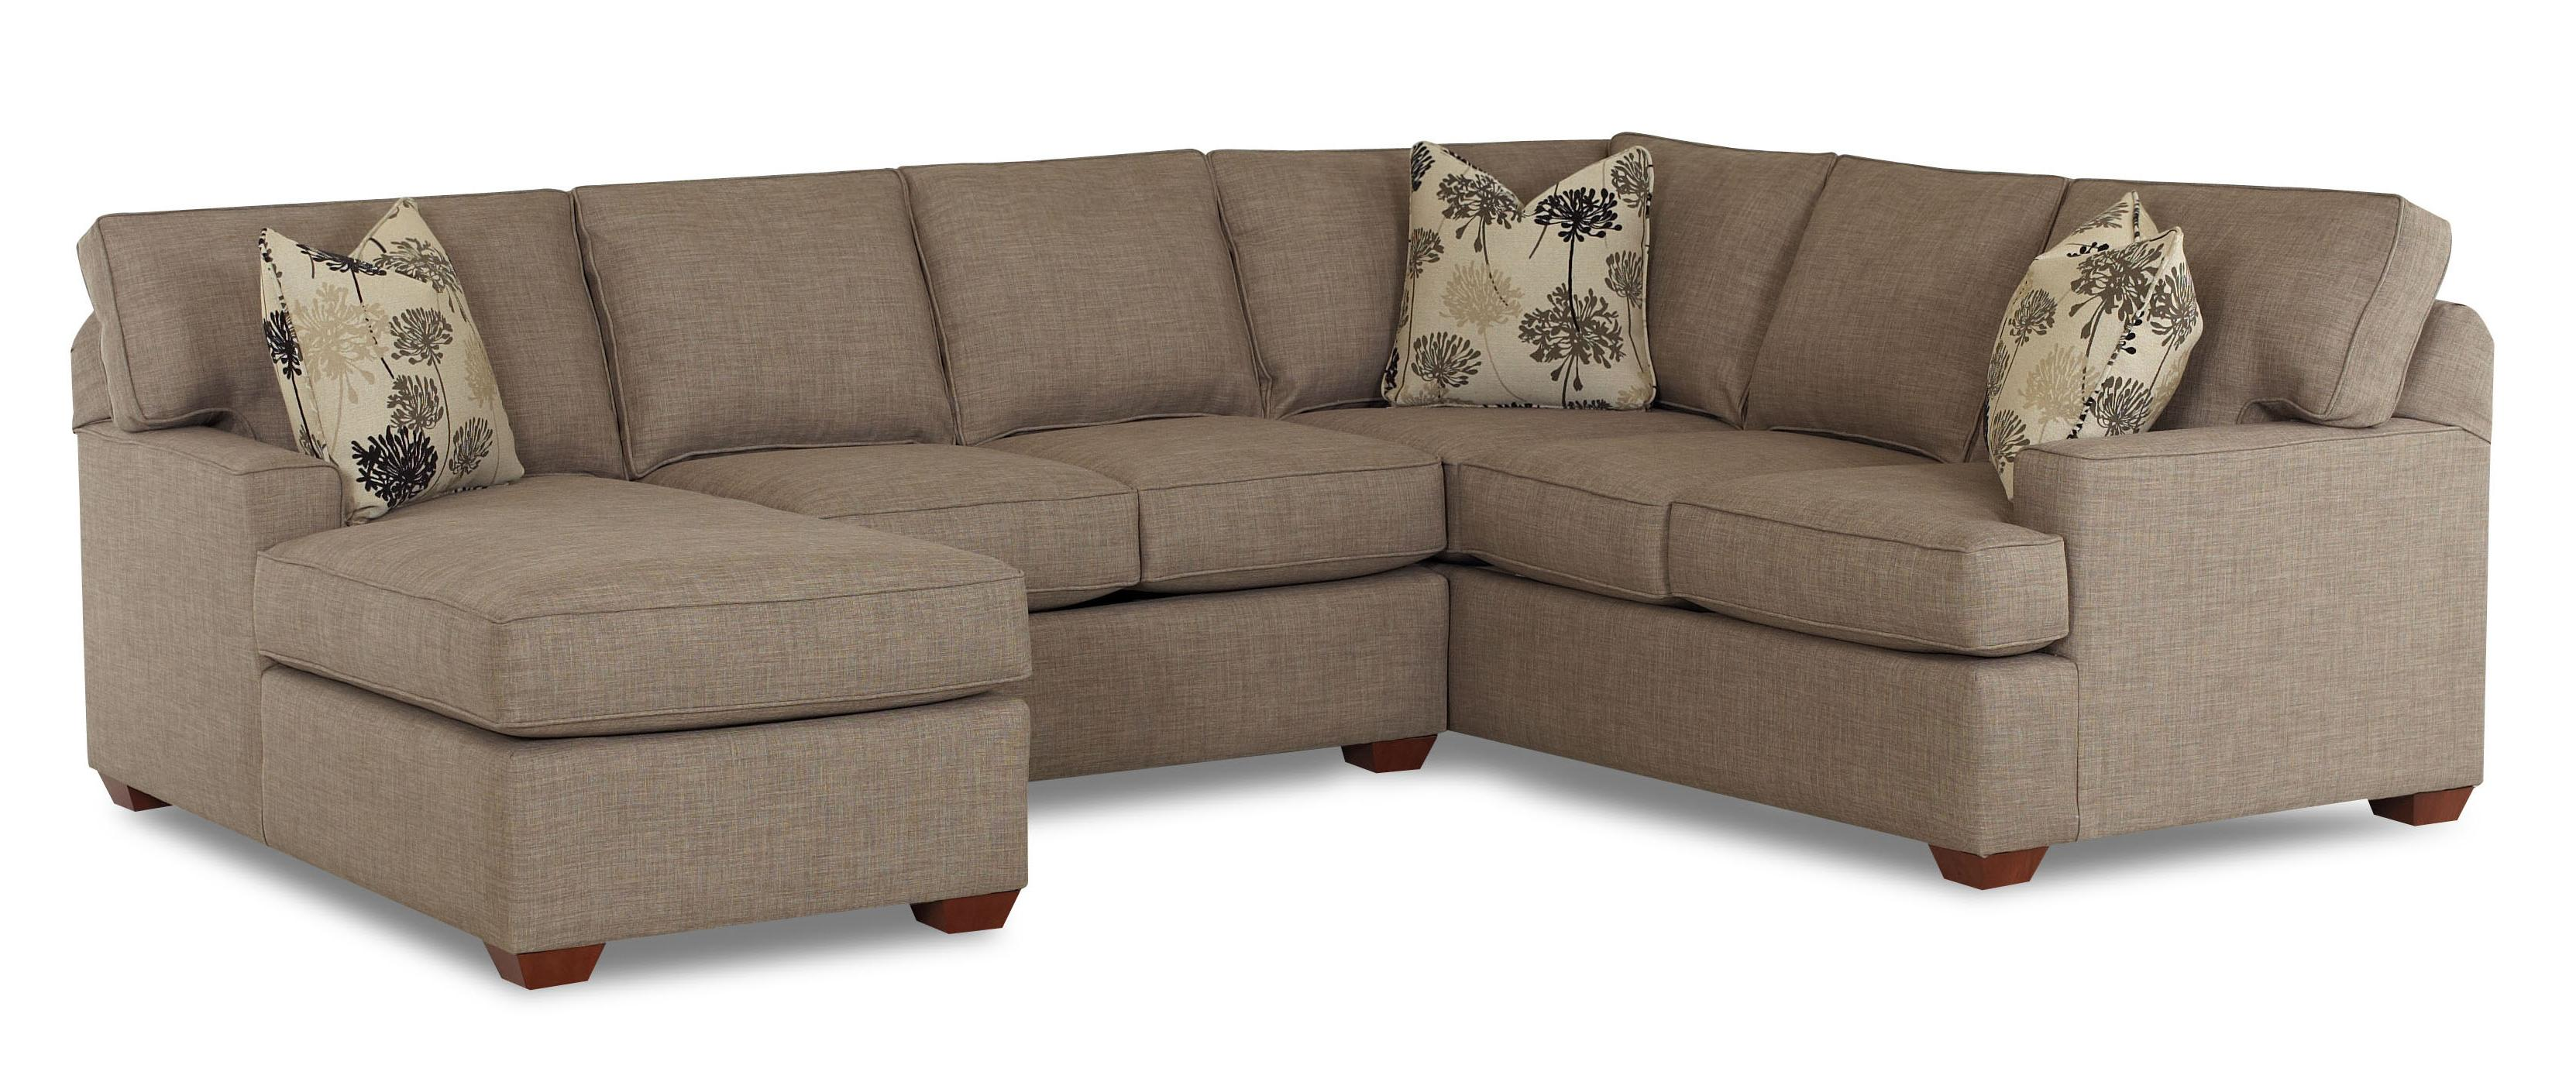 3 piece microfiber sectional sofa with chaise and loveseat set klaussner pantego laf